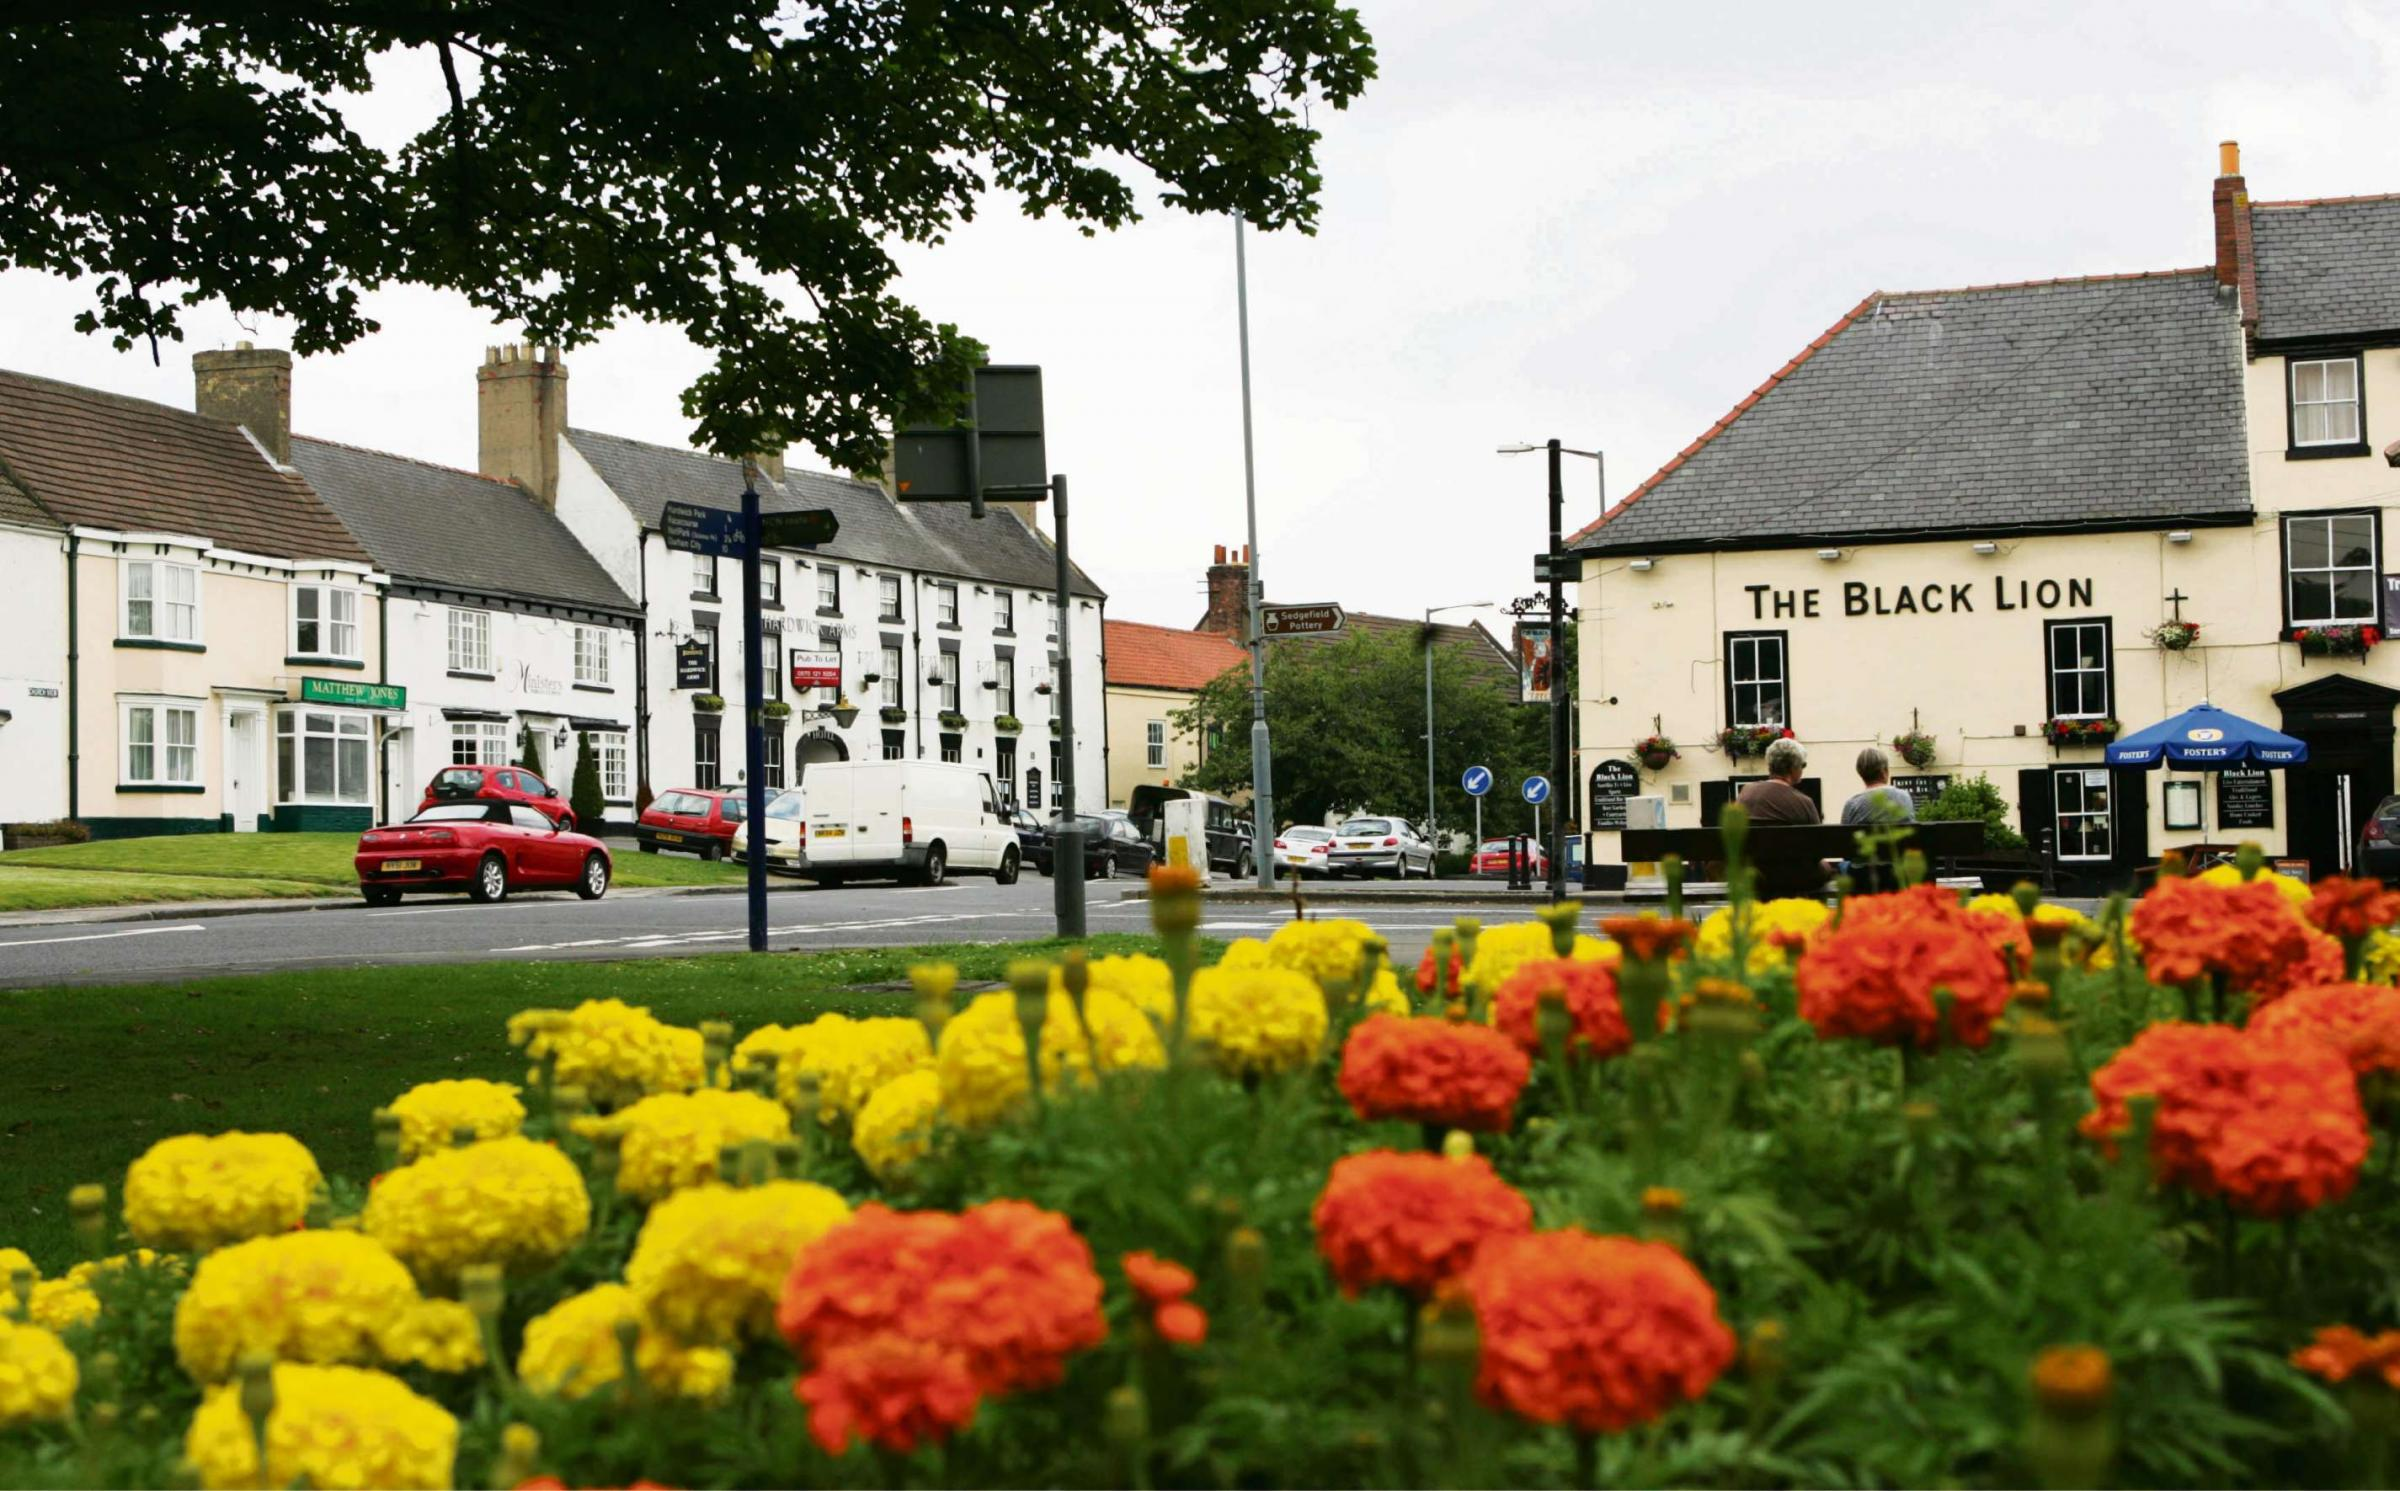 Sedgefield won gold in the Britain in Bloom contest in in 2012. The Sedgefield in Bloom committee is hosting a gardeners' question time event in July.